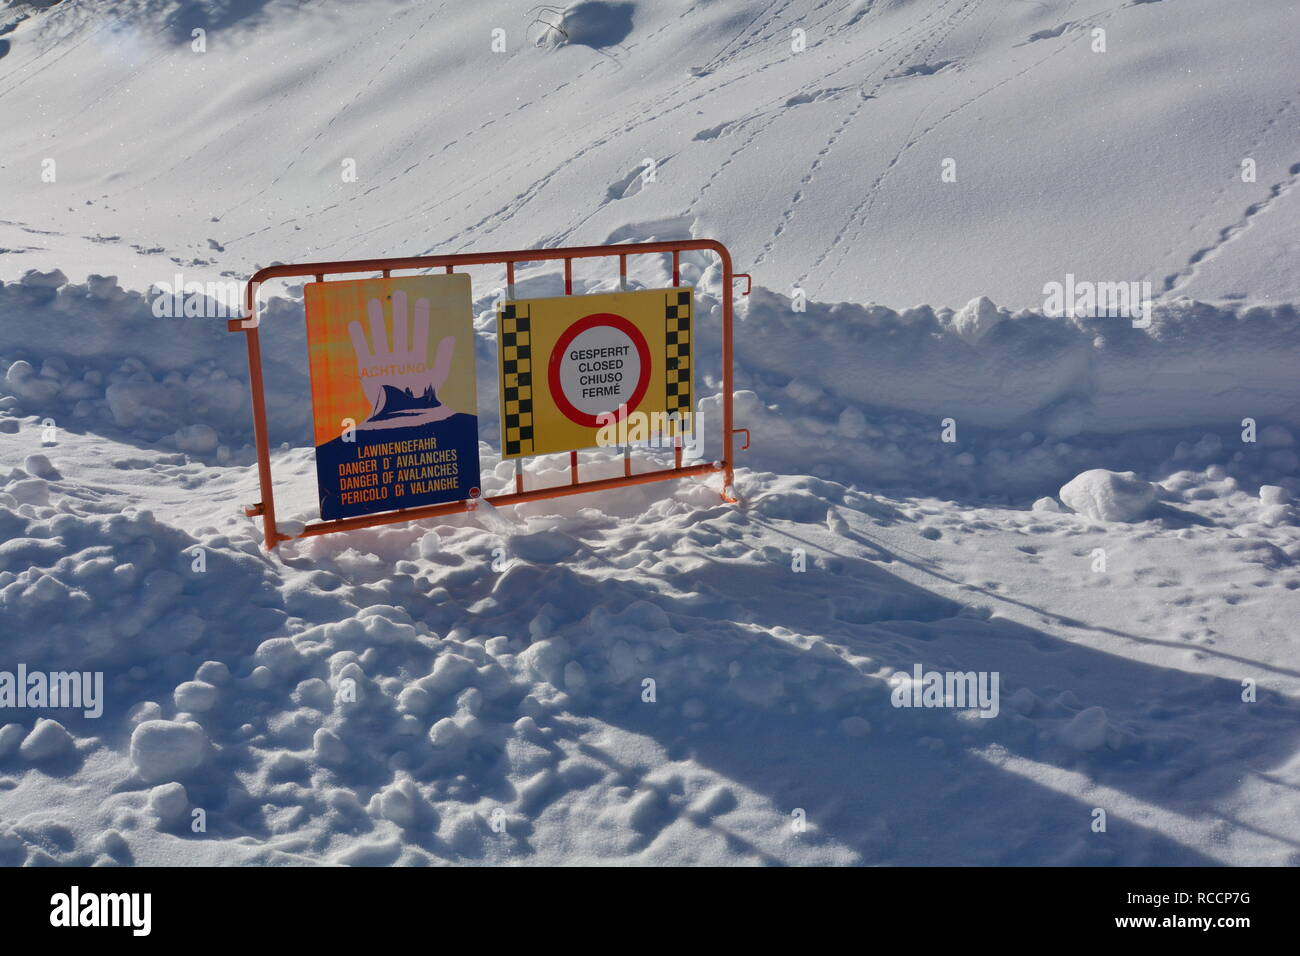 Avalanche danger sign. Closed road due to avalanche danger in the Austrian Alps. Massive snowfall in central Europe. - Stock Image